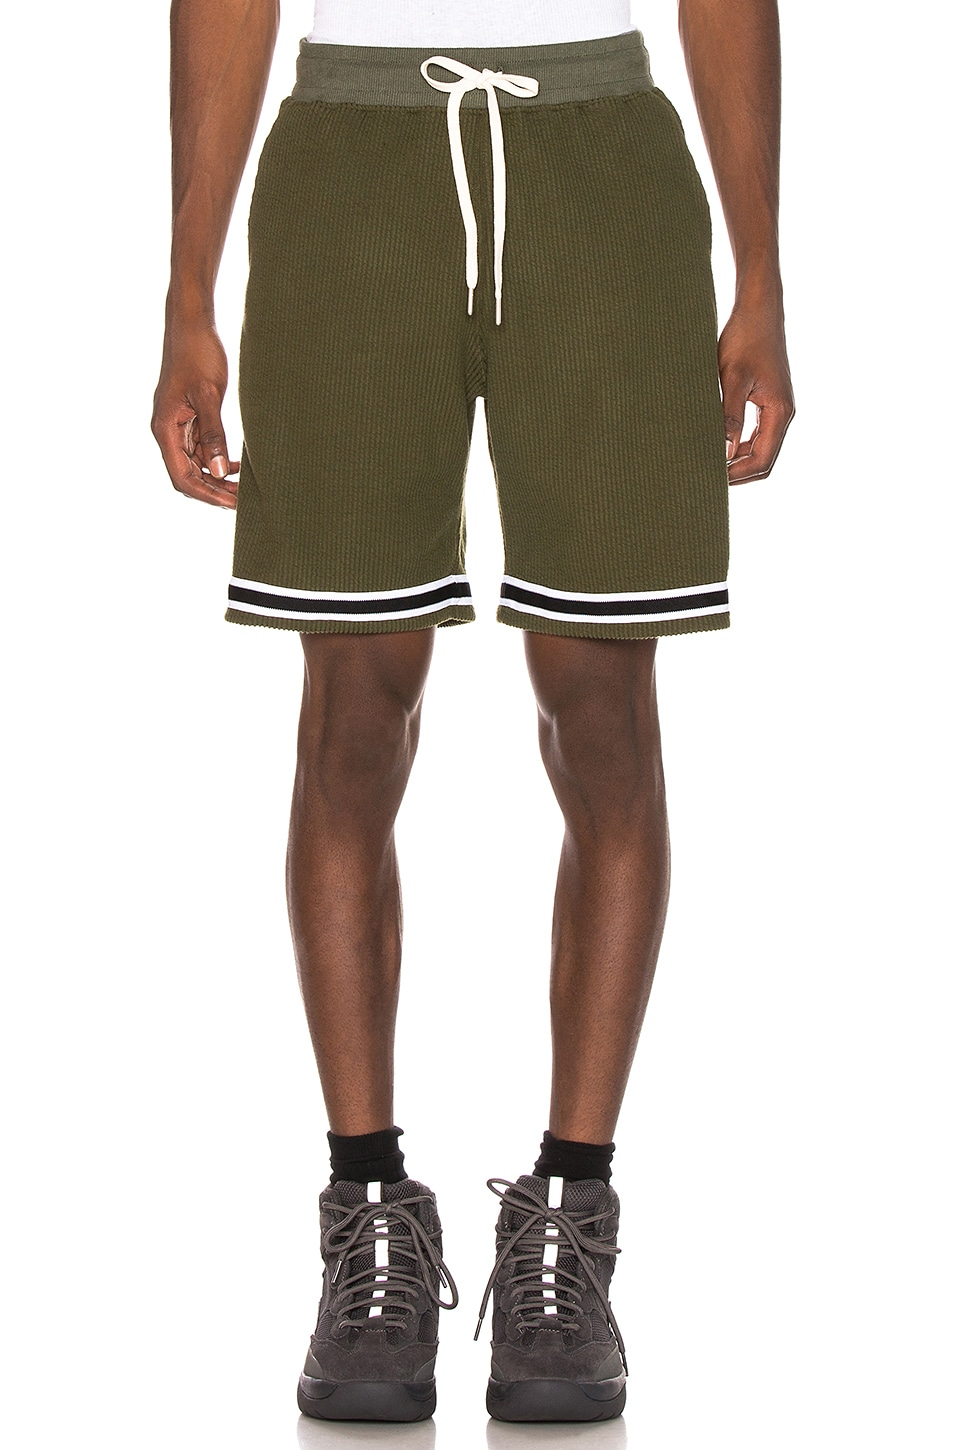 JOHN ELLIOTT Corduroy Knit Short in Olive